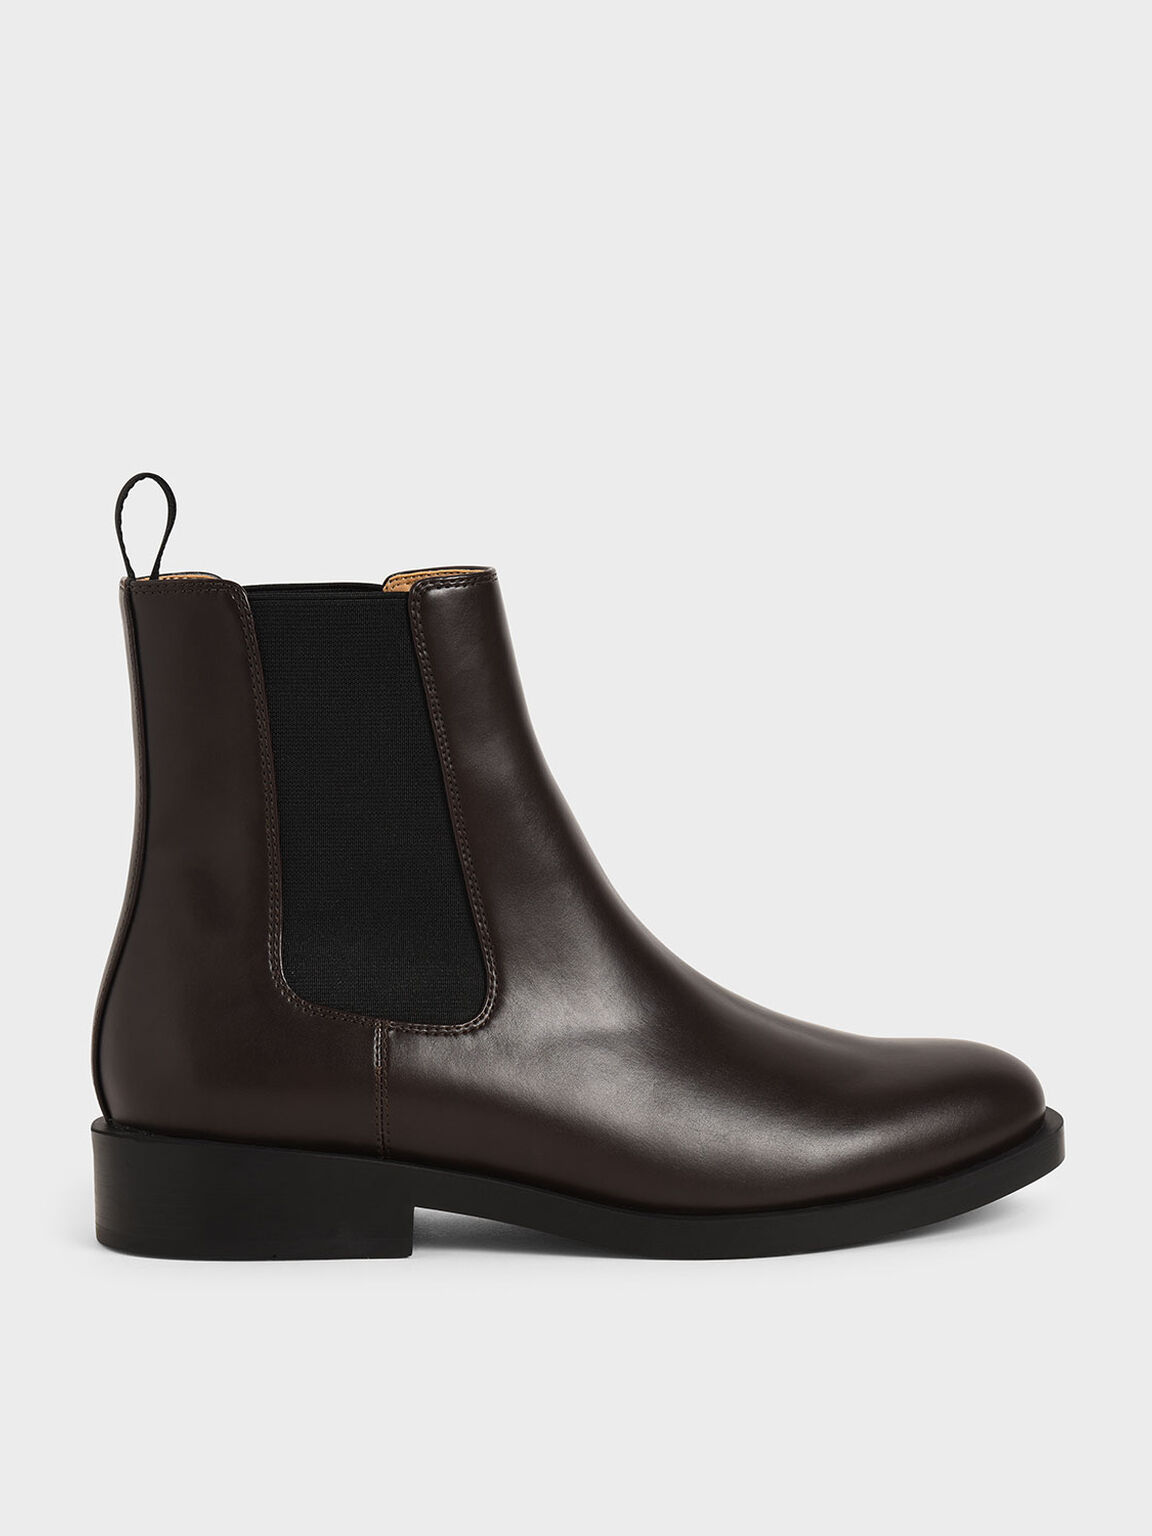 Round Toe Chelsea Boots, Dark Brown, hi-res